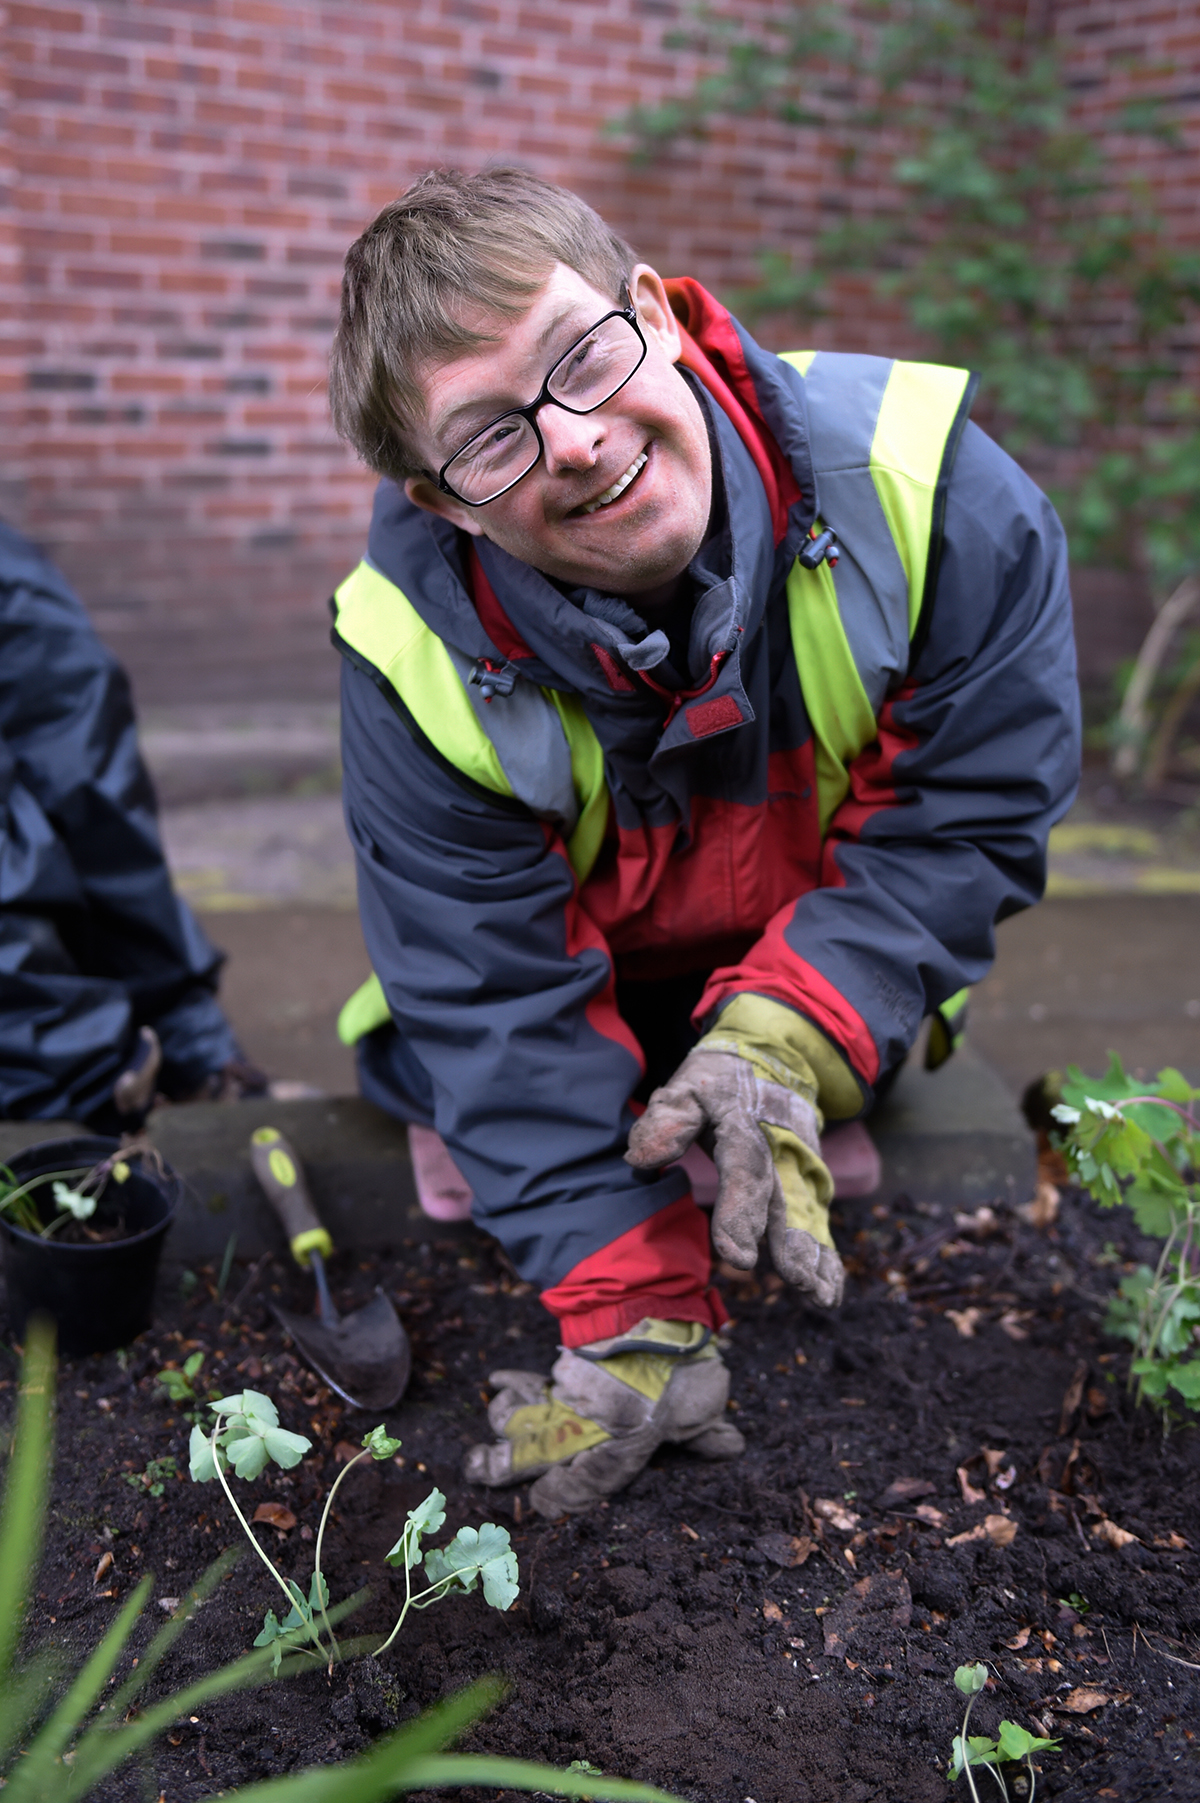 Gardening student Graham planting in the Greenbank College grounds